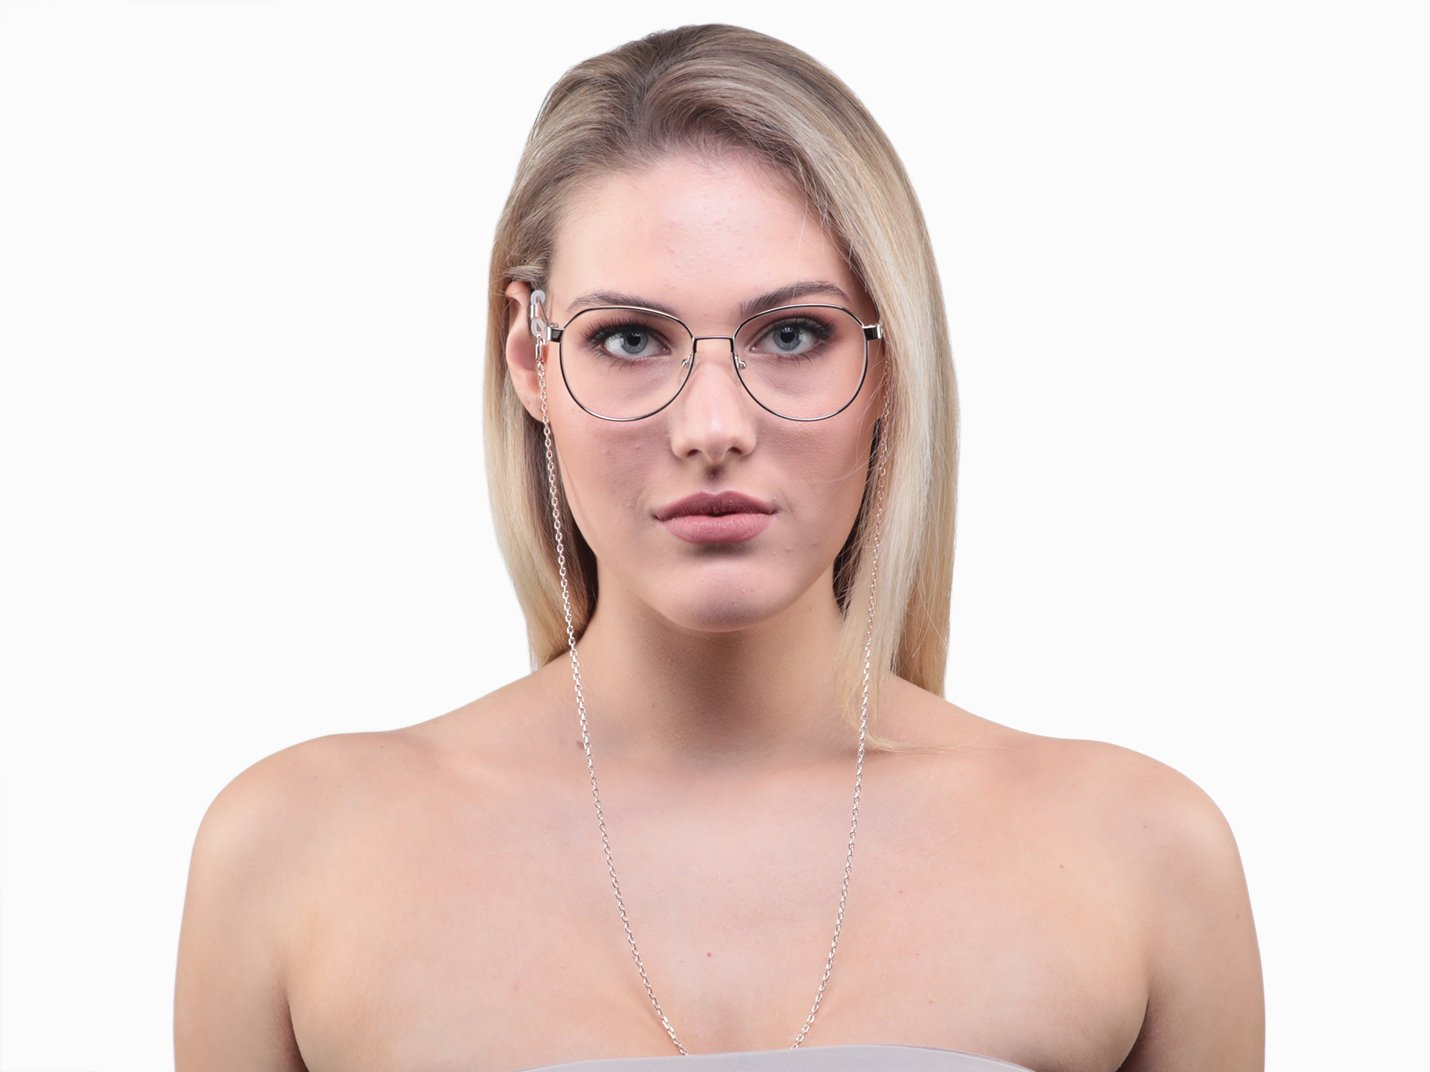 Rose Gold Glasses Chain - In This Moment